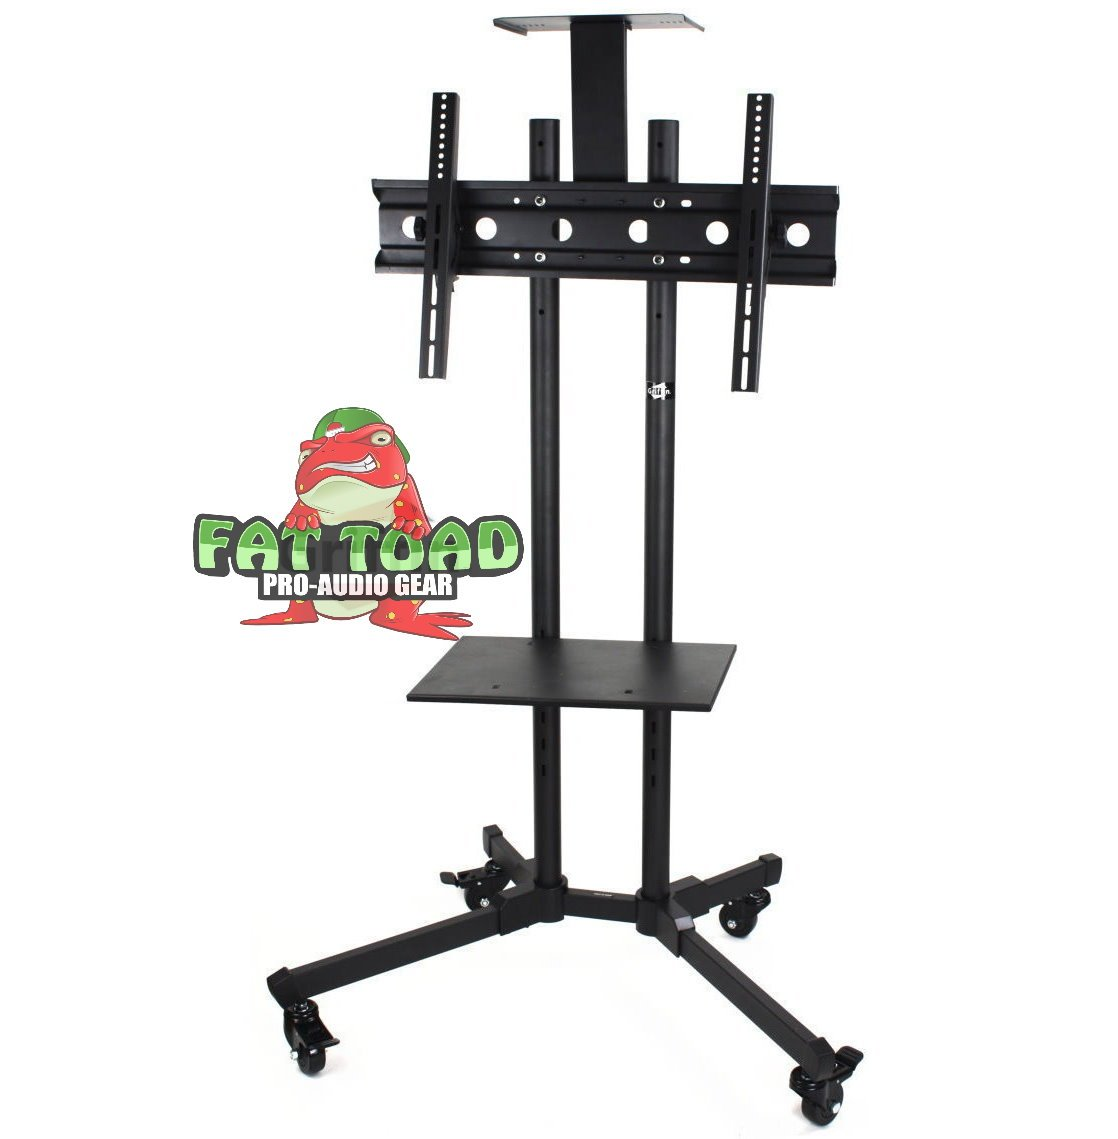 LCD TV Cart by Fat Toad | Rolling Flat Panel Screen Stand with DVD Player Shelf|Deluxe Mobile Plasma Television/Monitor Console Mount on Wheels & 2 Storage Shelves|Suitable for AV, Home, or Business